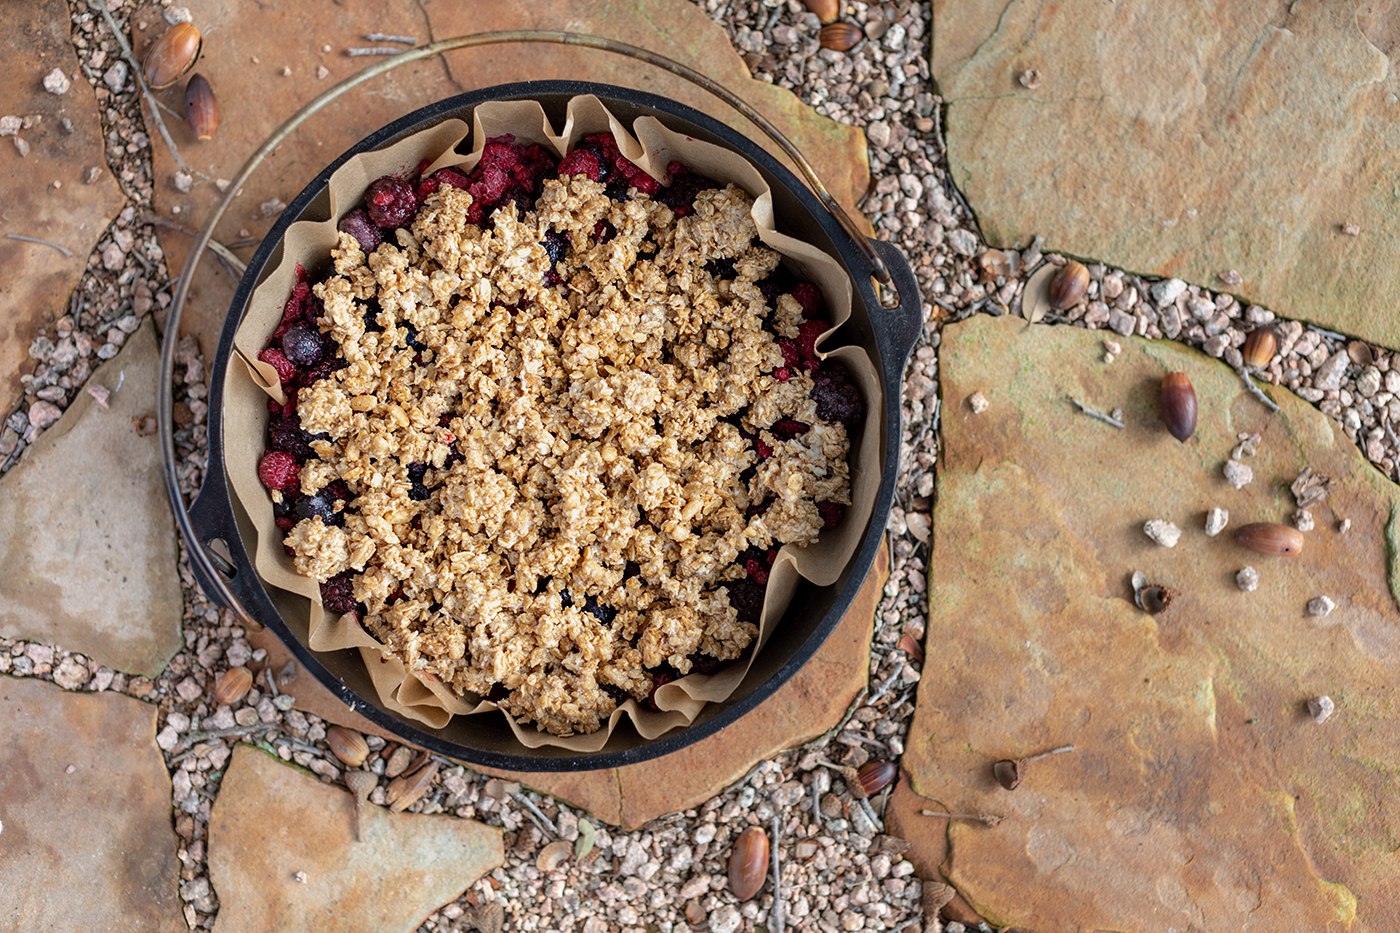 A dutch oven filled with berries and crunched granola